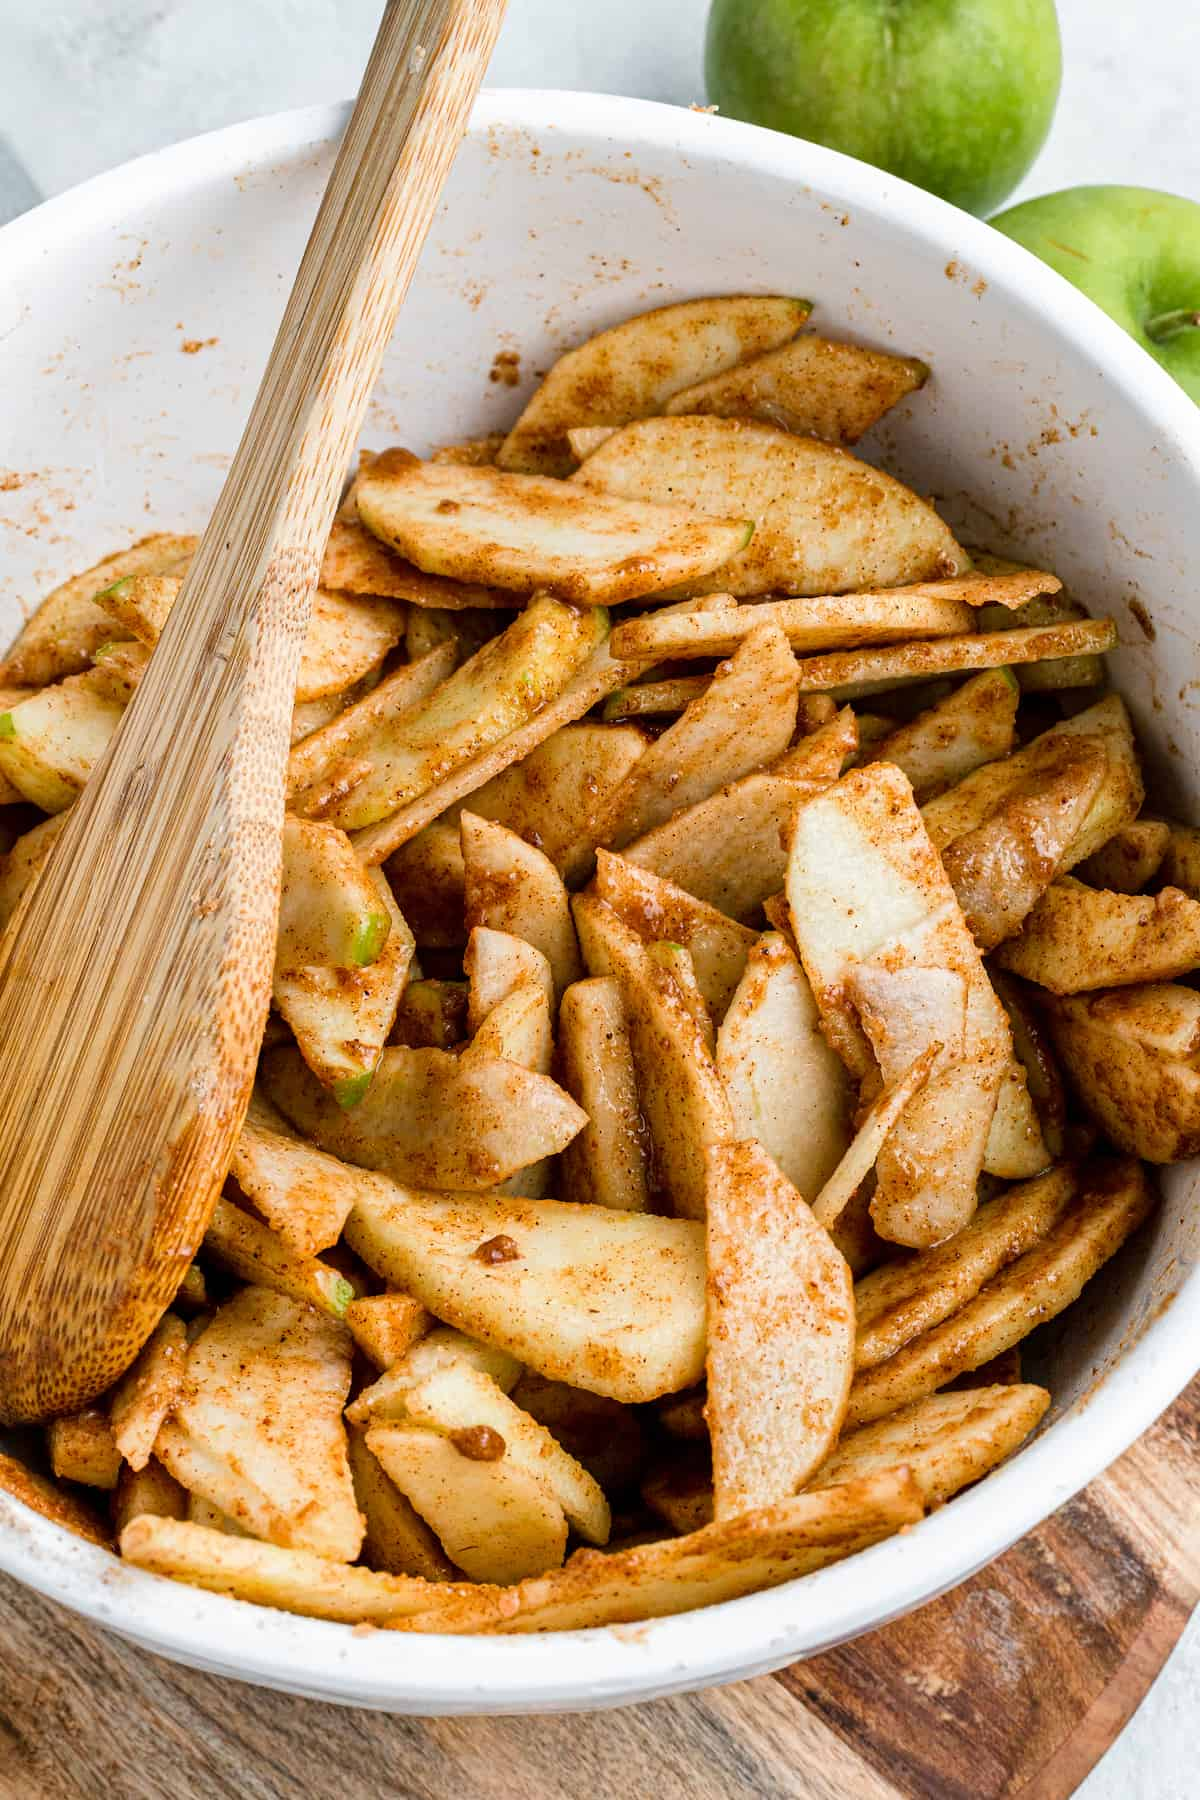 slices of apples in cinnamon sugar in a mixing bowl